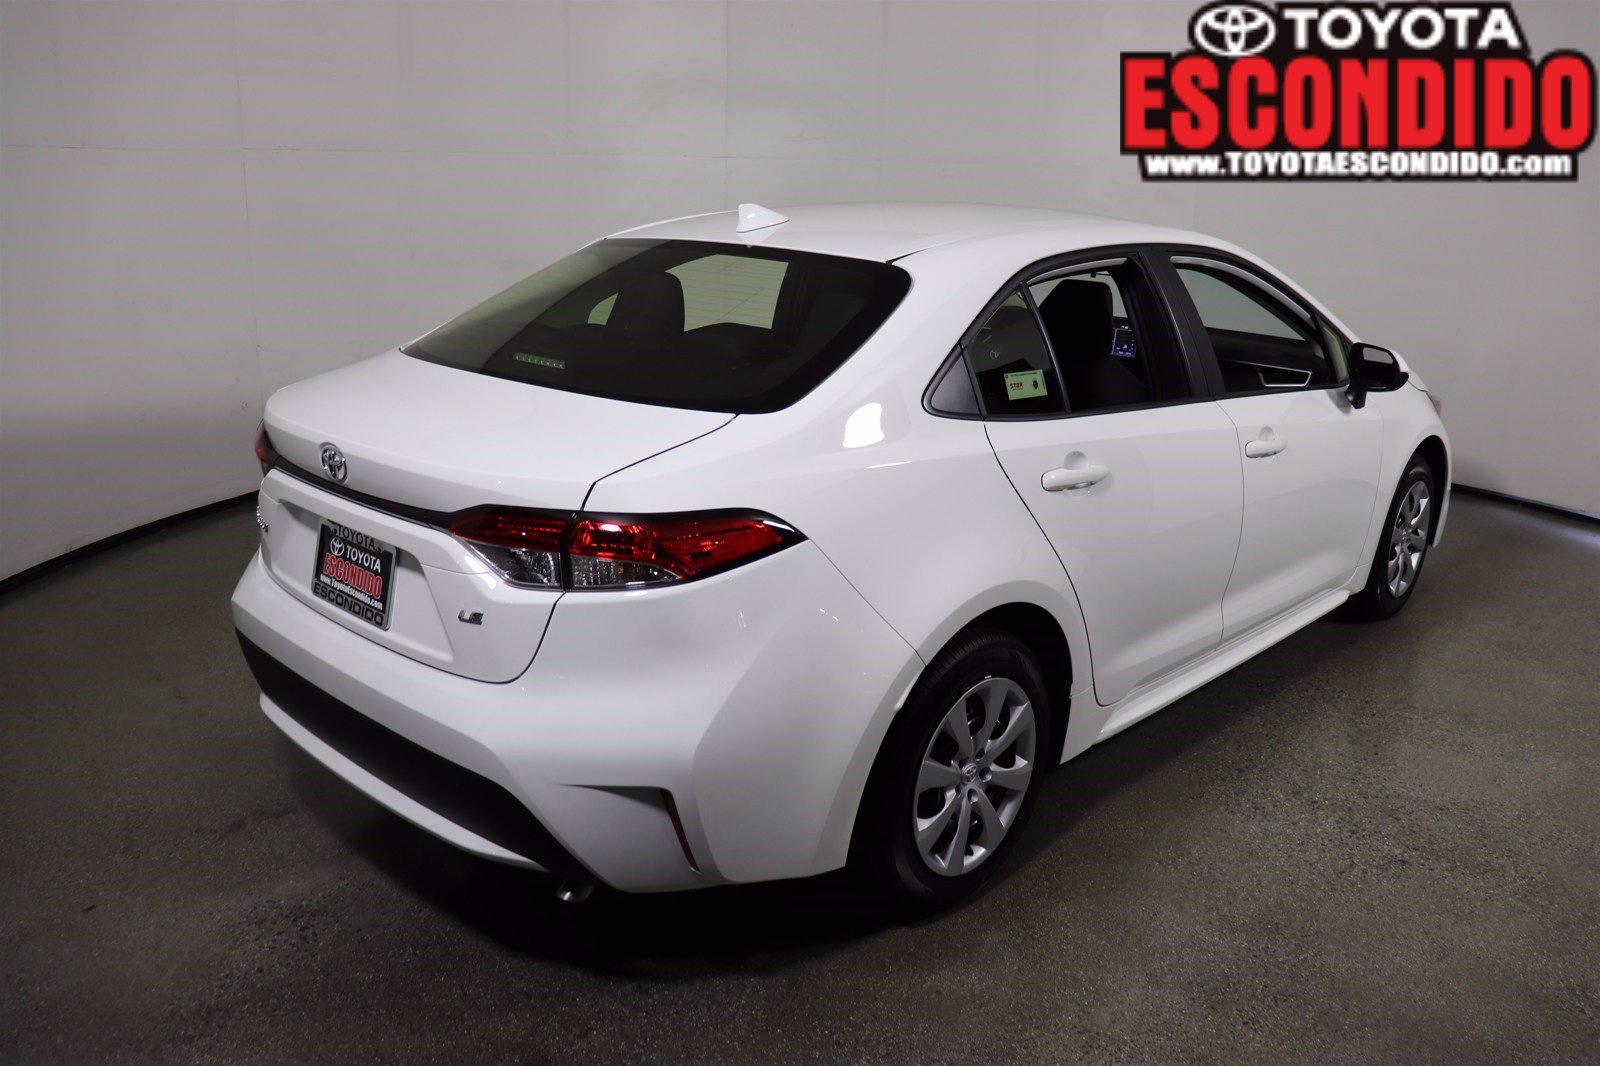 new 2021 toyota corolla le 4dr car in escondido #1027537